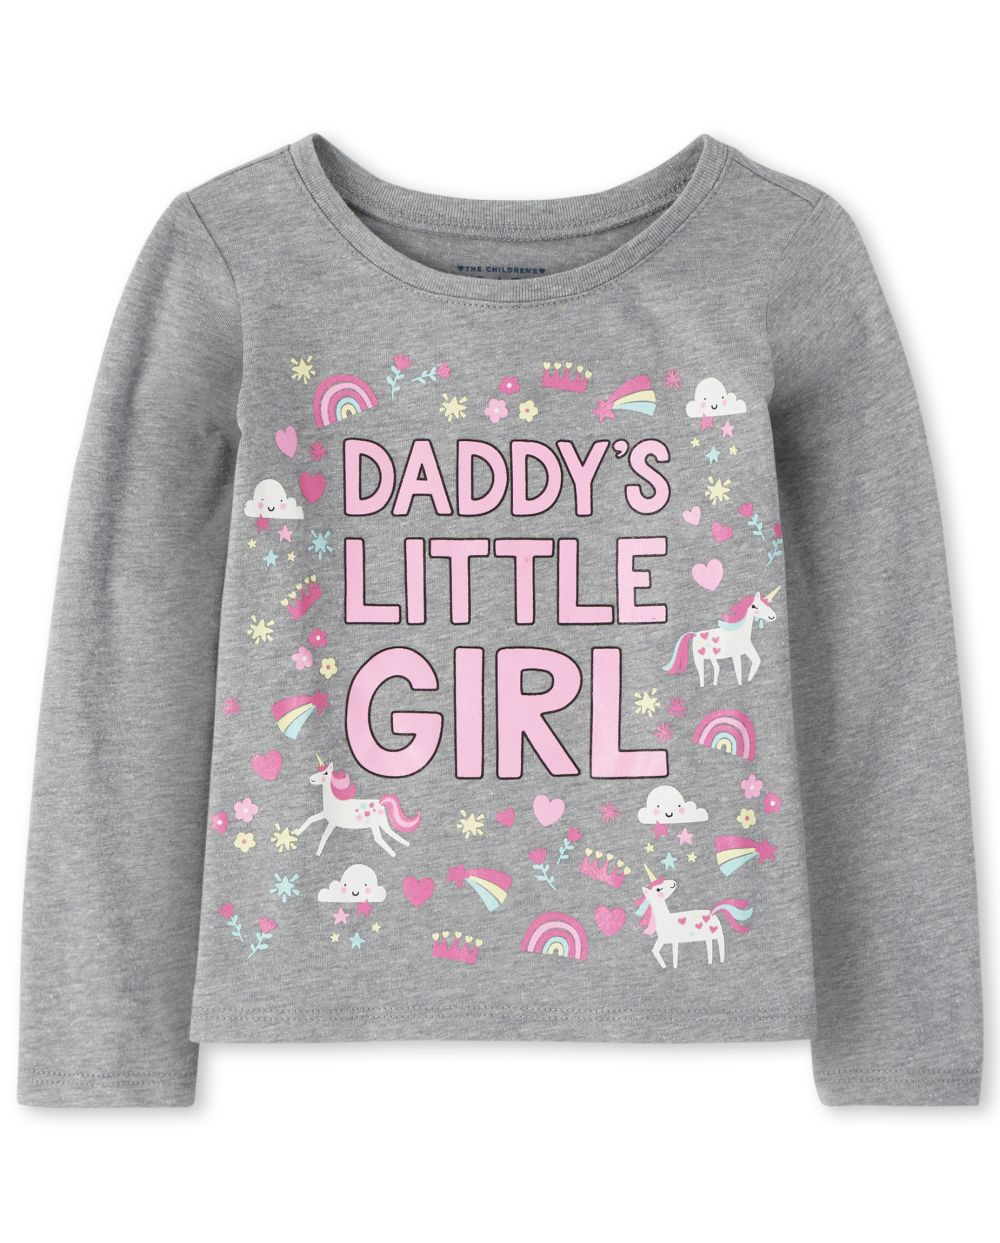 Baby And Toddler Girls Daddy's Little Girl Graphic Tee